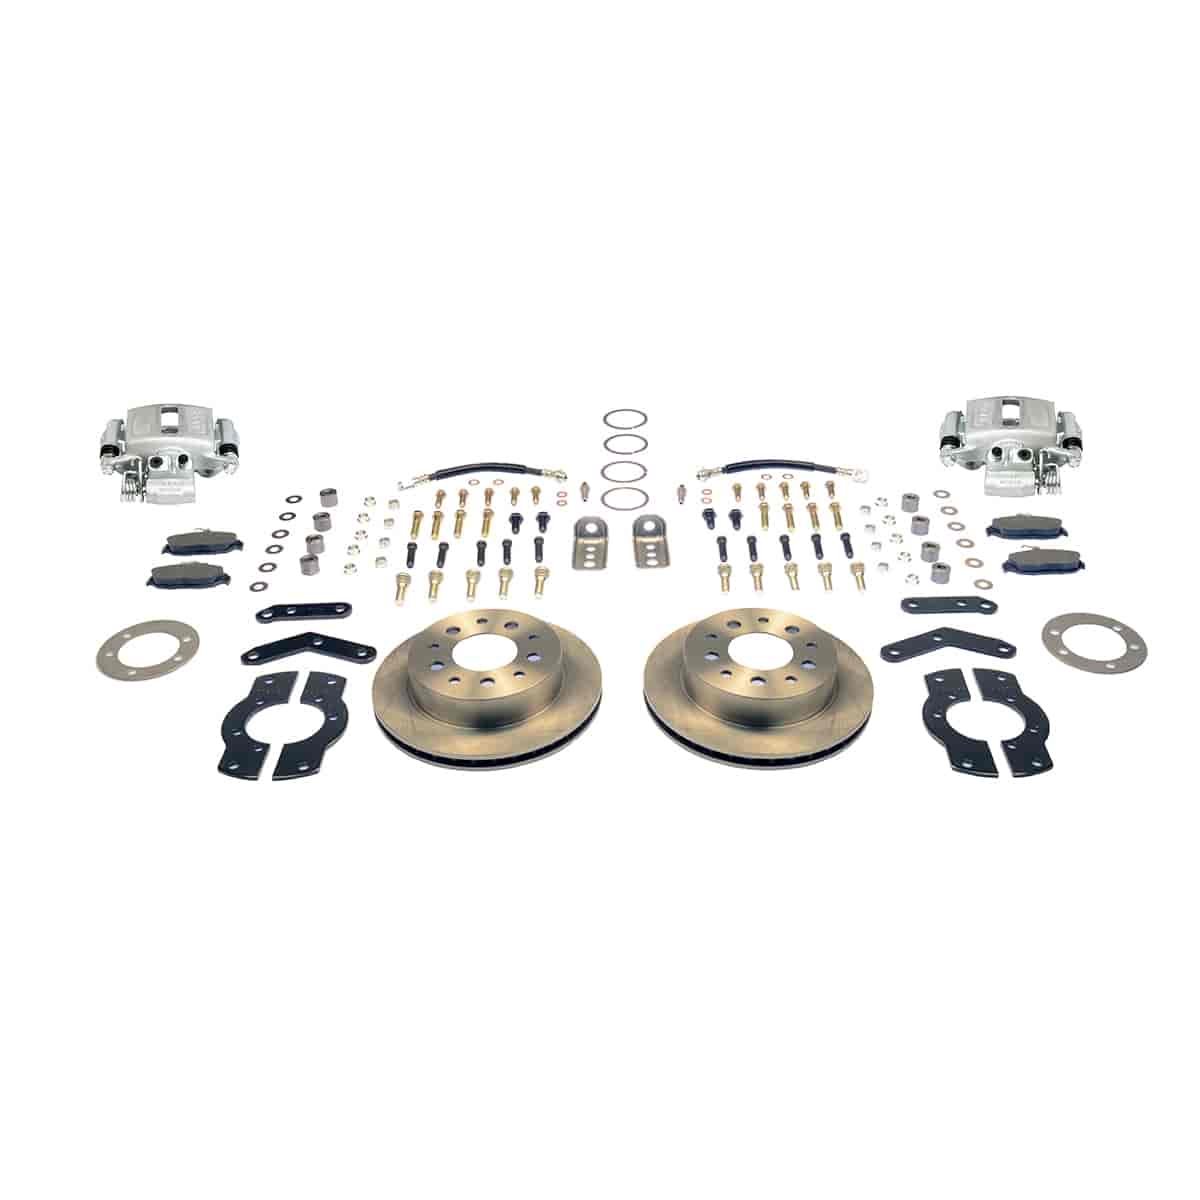 Stainless Steel Brakes A125-4 - Stainless Steel Brakes Single Piston Rear Drum to Disc Brake Conversion Kits